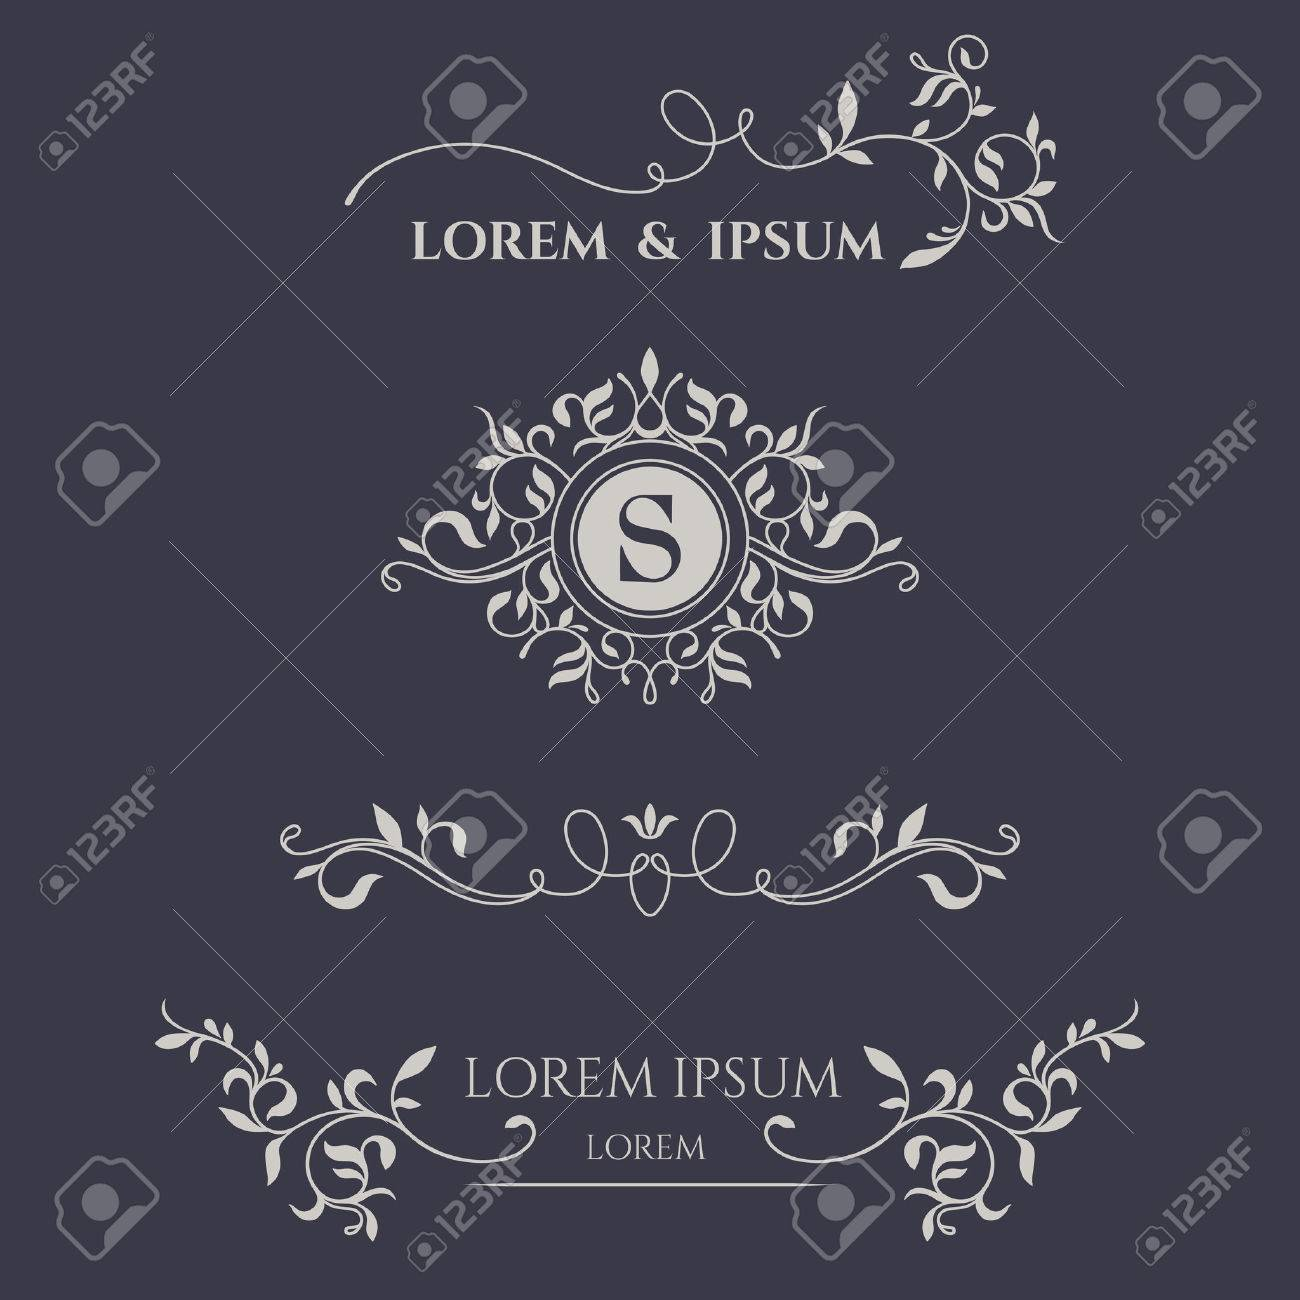 Decorative frame, monogram, border. Template signage, labels, stickers, cards. Graphic design page. - 44264506